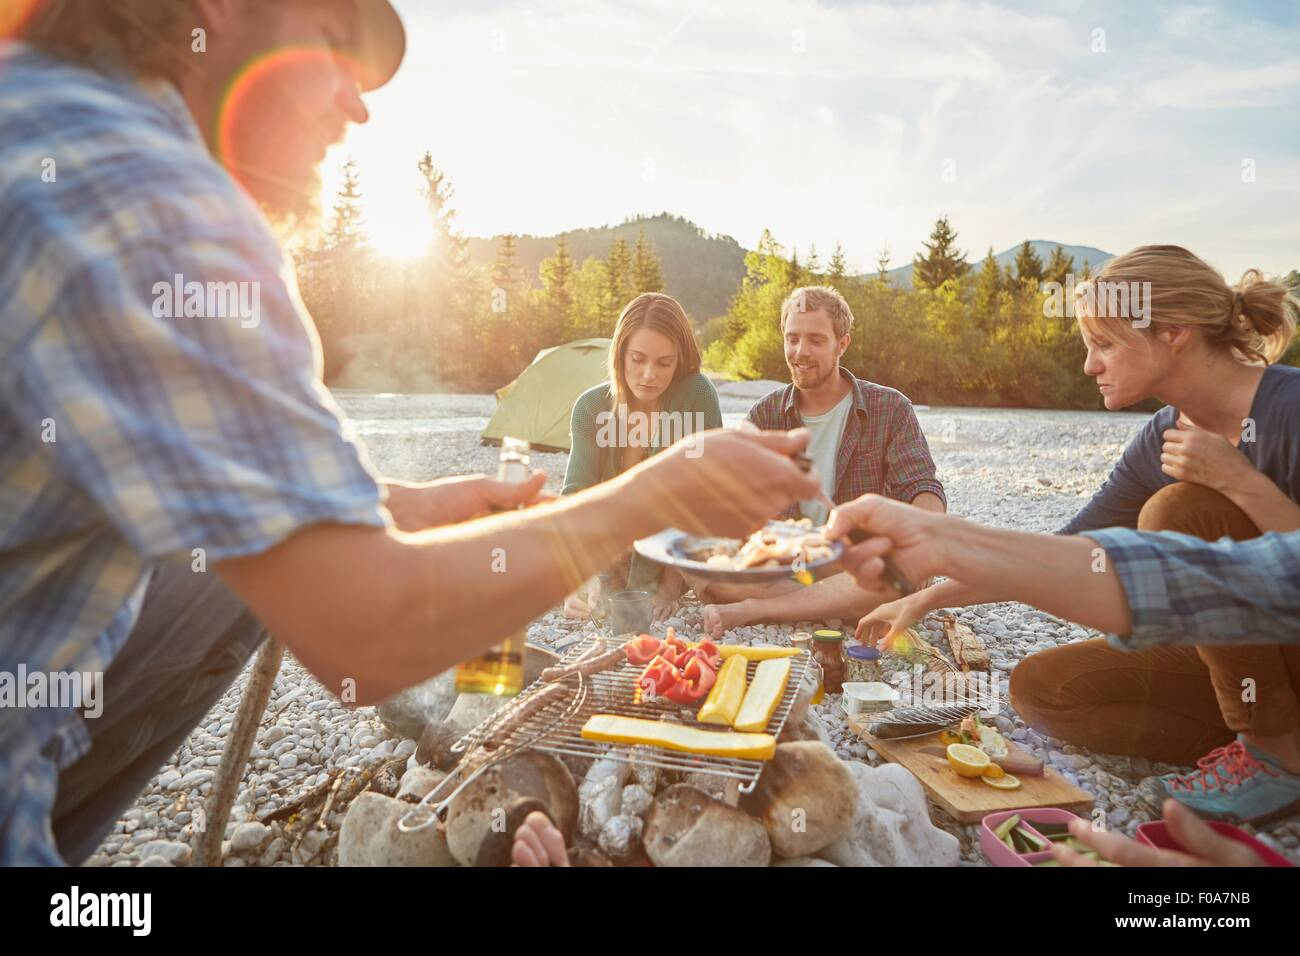 Adults sitting around campfire serving food from barbecue - Stock Image